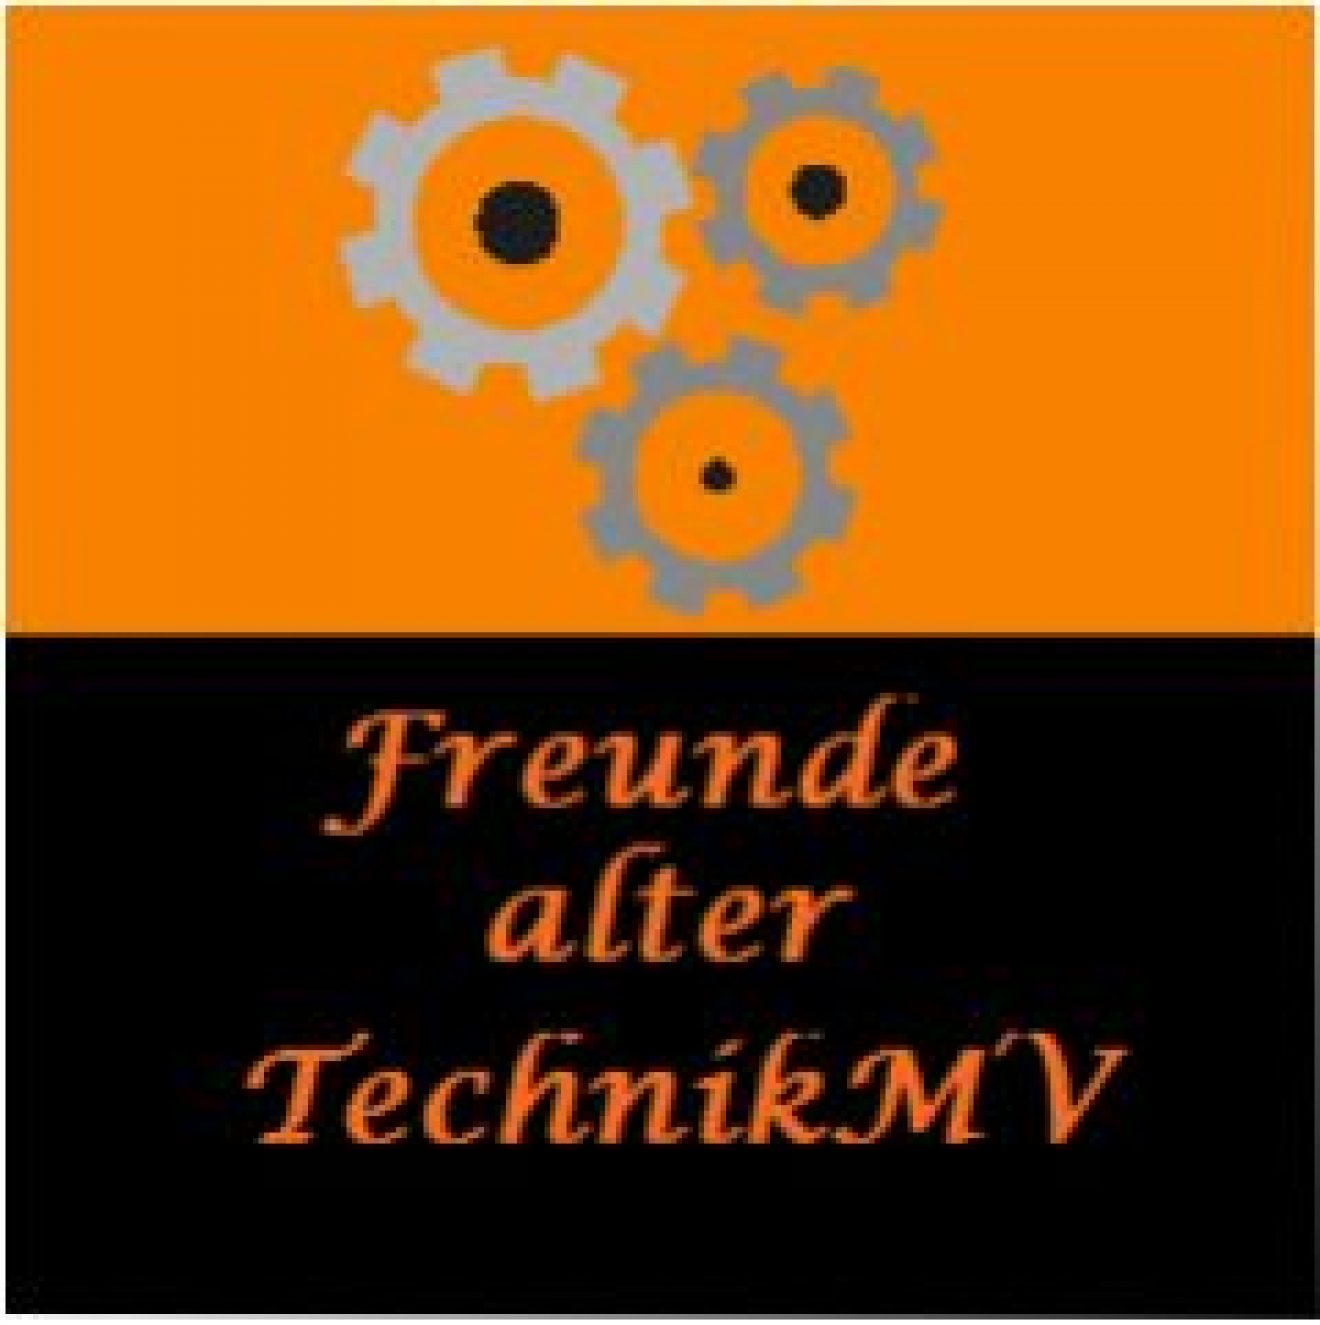 Freunde alter Technik MV